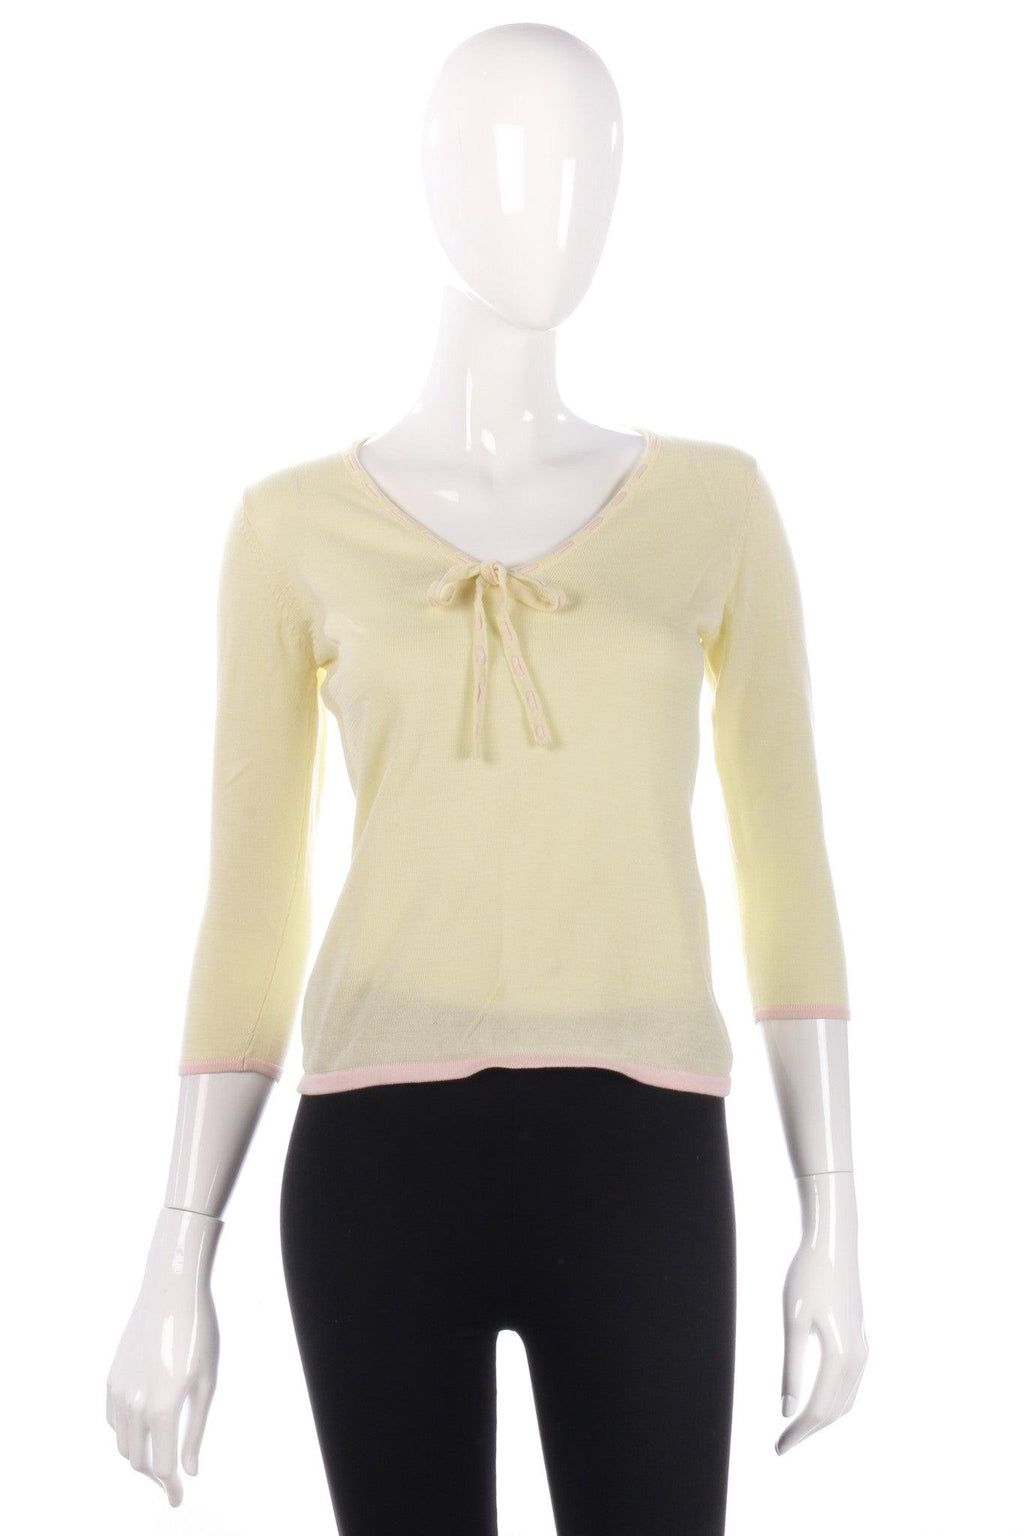 Paul Costello Dressage yellow top size 8/10